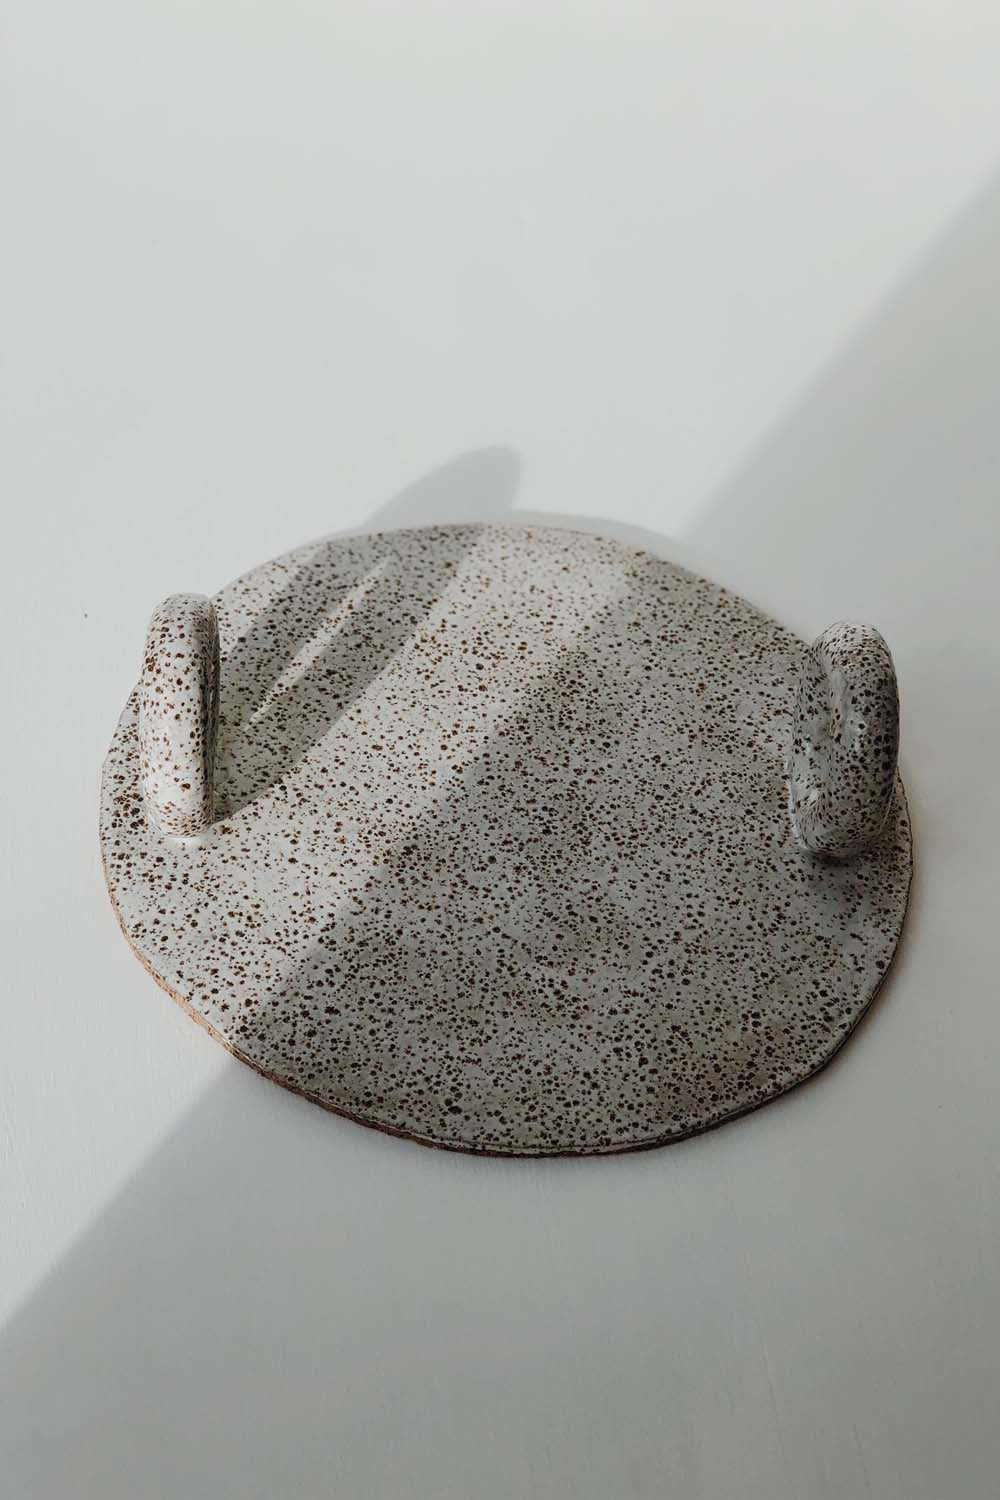 Speckled Ceramic Platter by Gretel